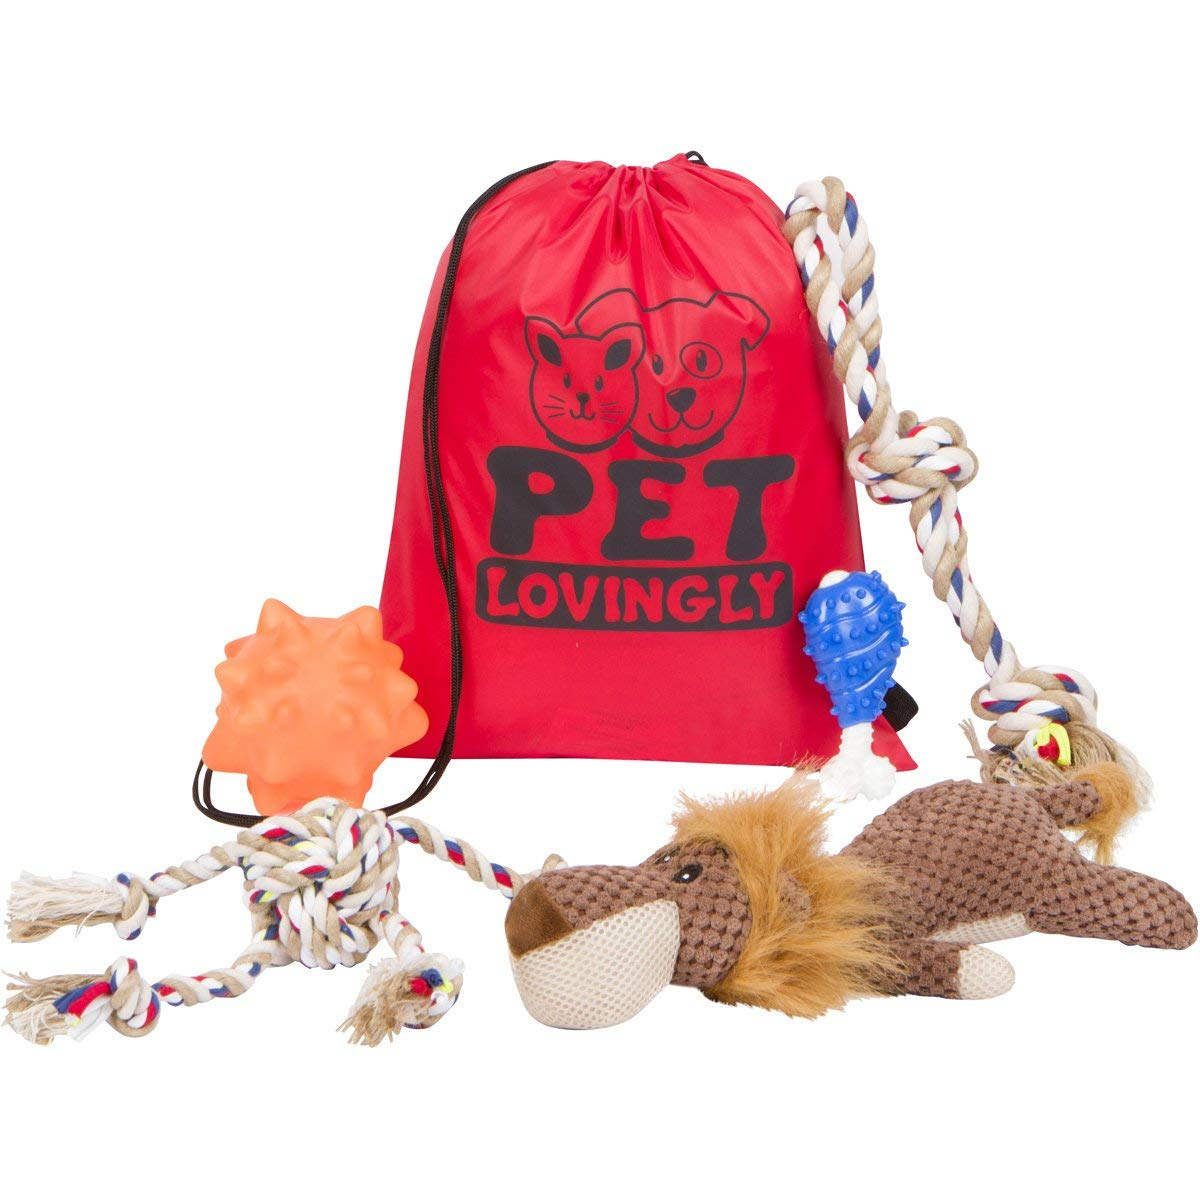 Pet Lovingly Dog Toys Set For Medium To Large Sized Doggies – Durable & Pet-Friendly Design For Big & Energetic Dogs, Heavy Duty Chew & Squeaky Toys, Reduce Boredom & Promote Indoor/Outdoor Exercise